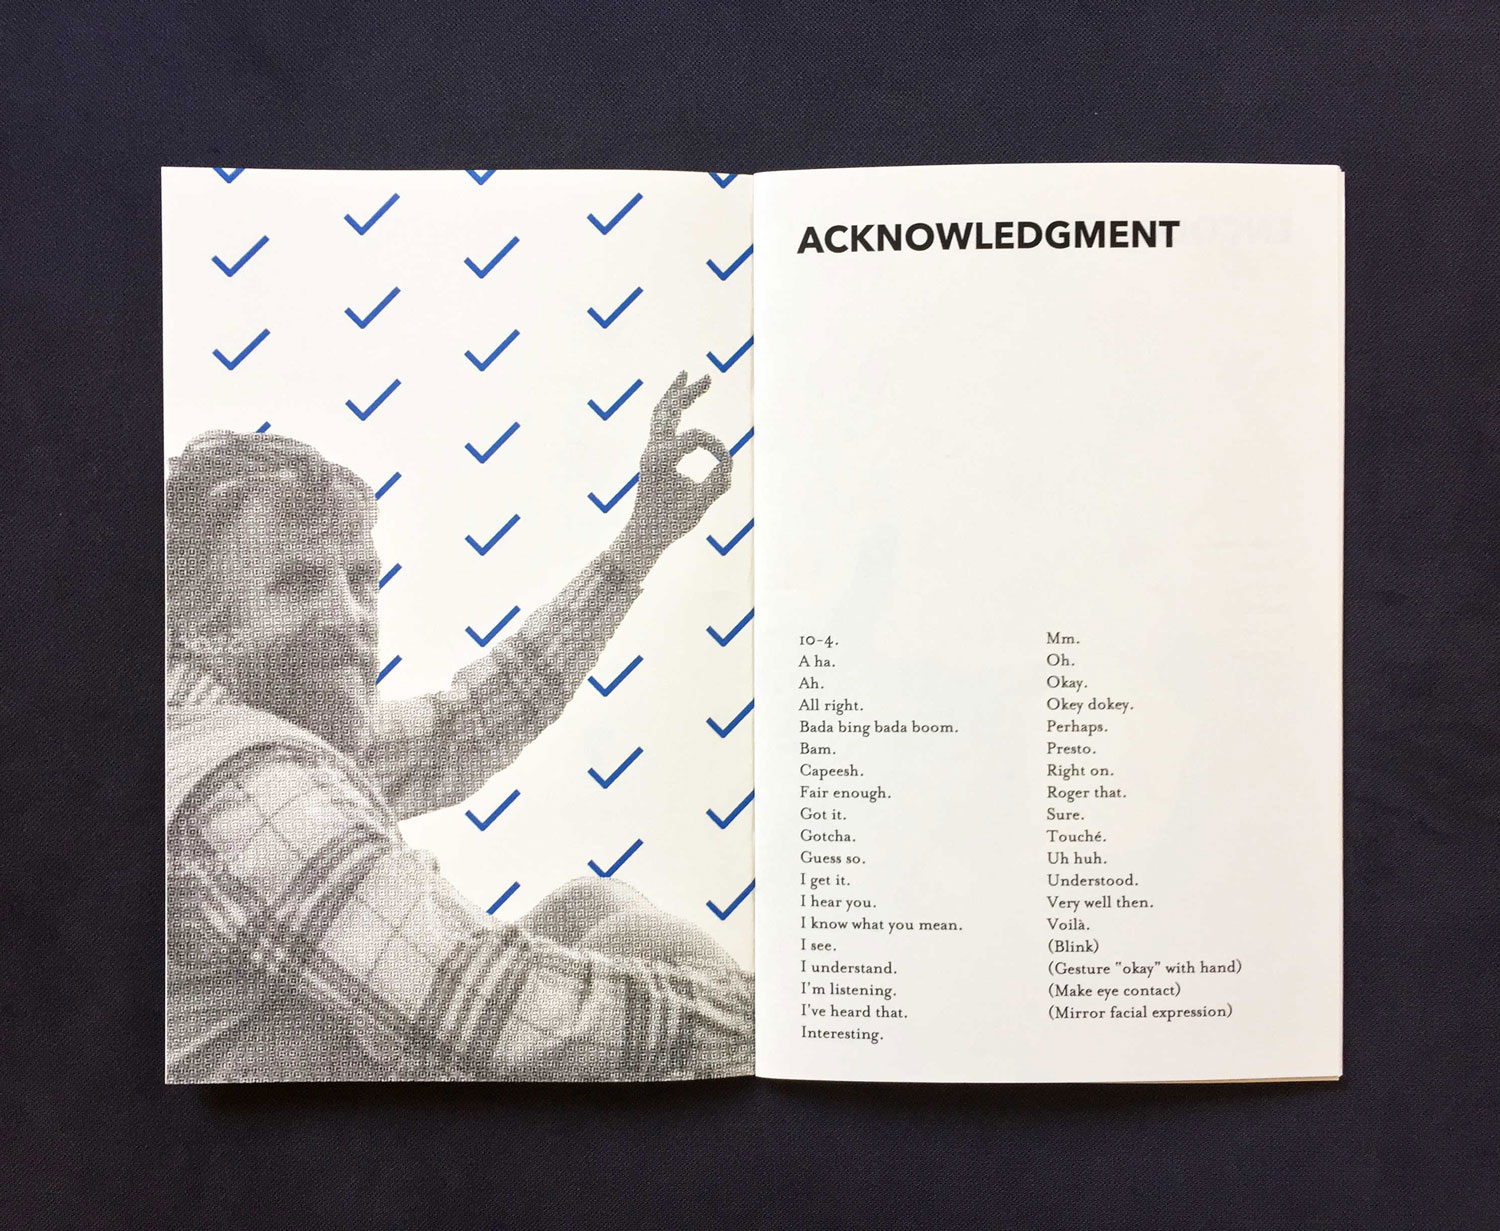 Interior spread of section titled Acknowledgement, featuring a man making an OK sign with his hand